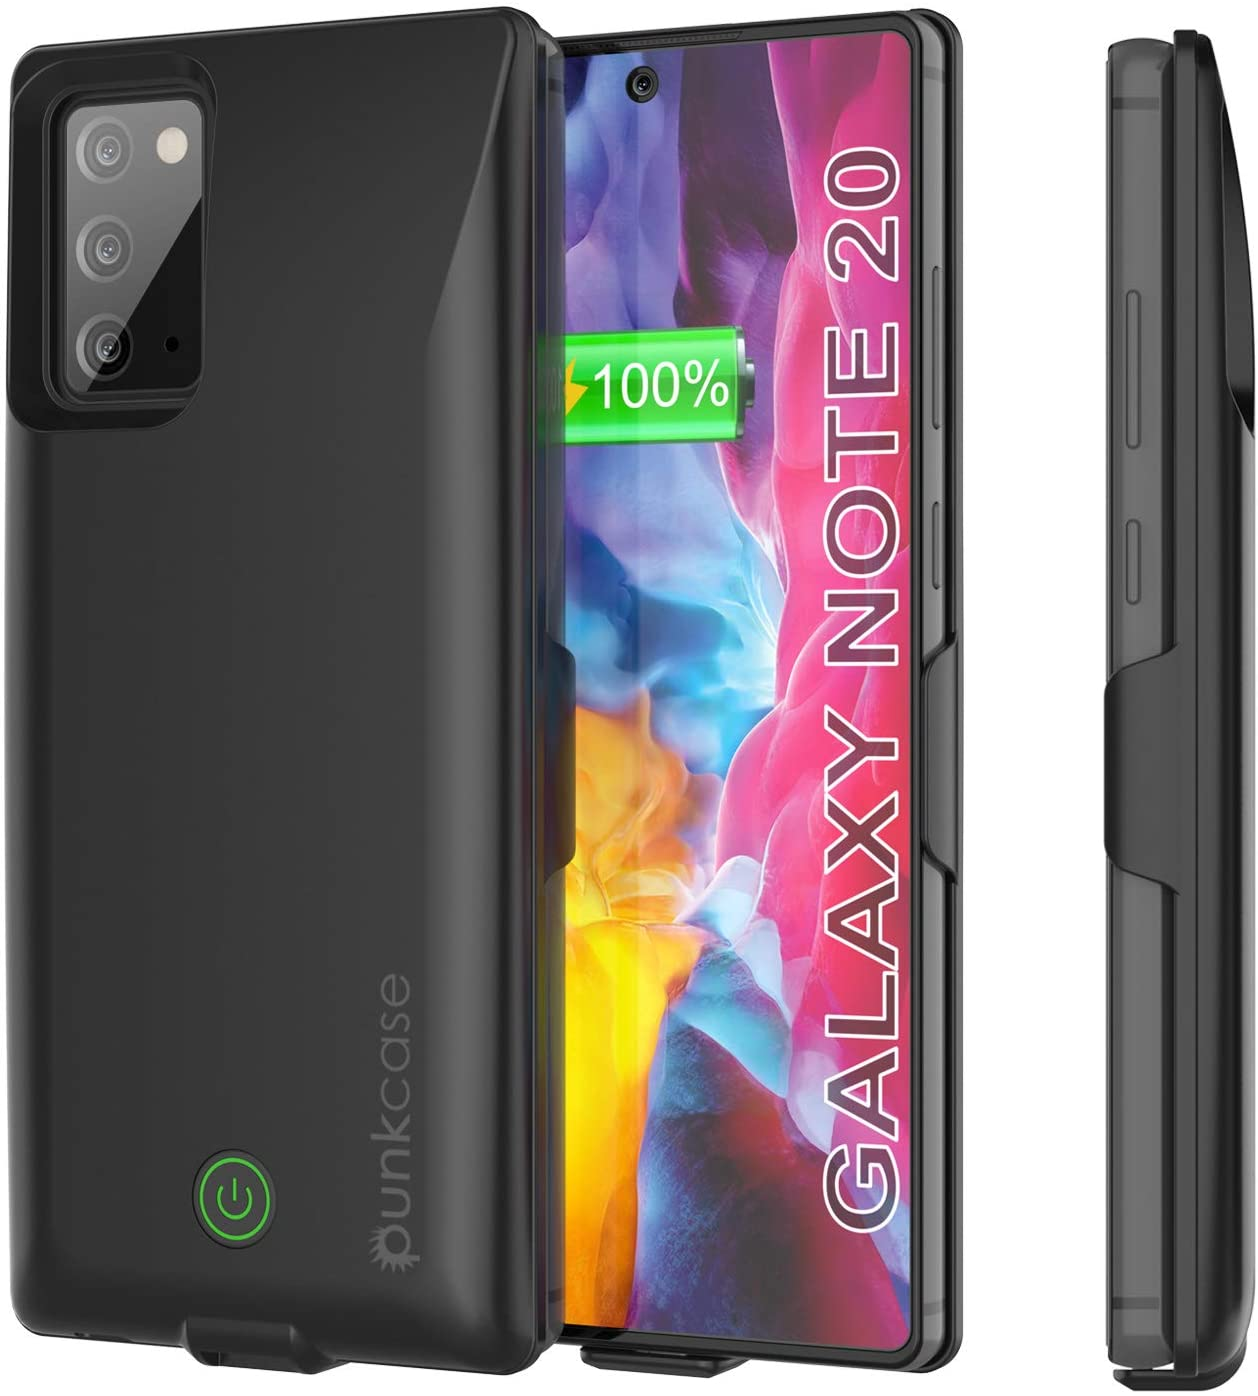 Galaxy Note 20 6000mAH Battery Charger PunkJuice 2.0 Slim Case [Black]